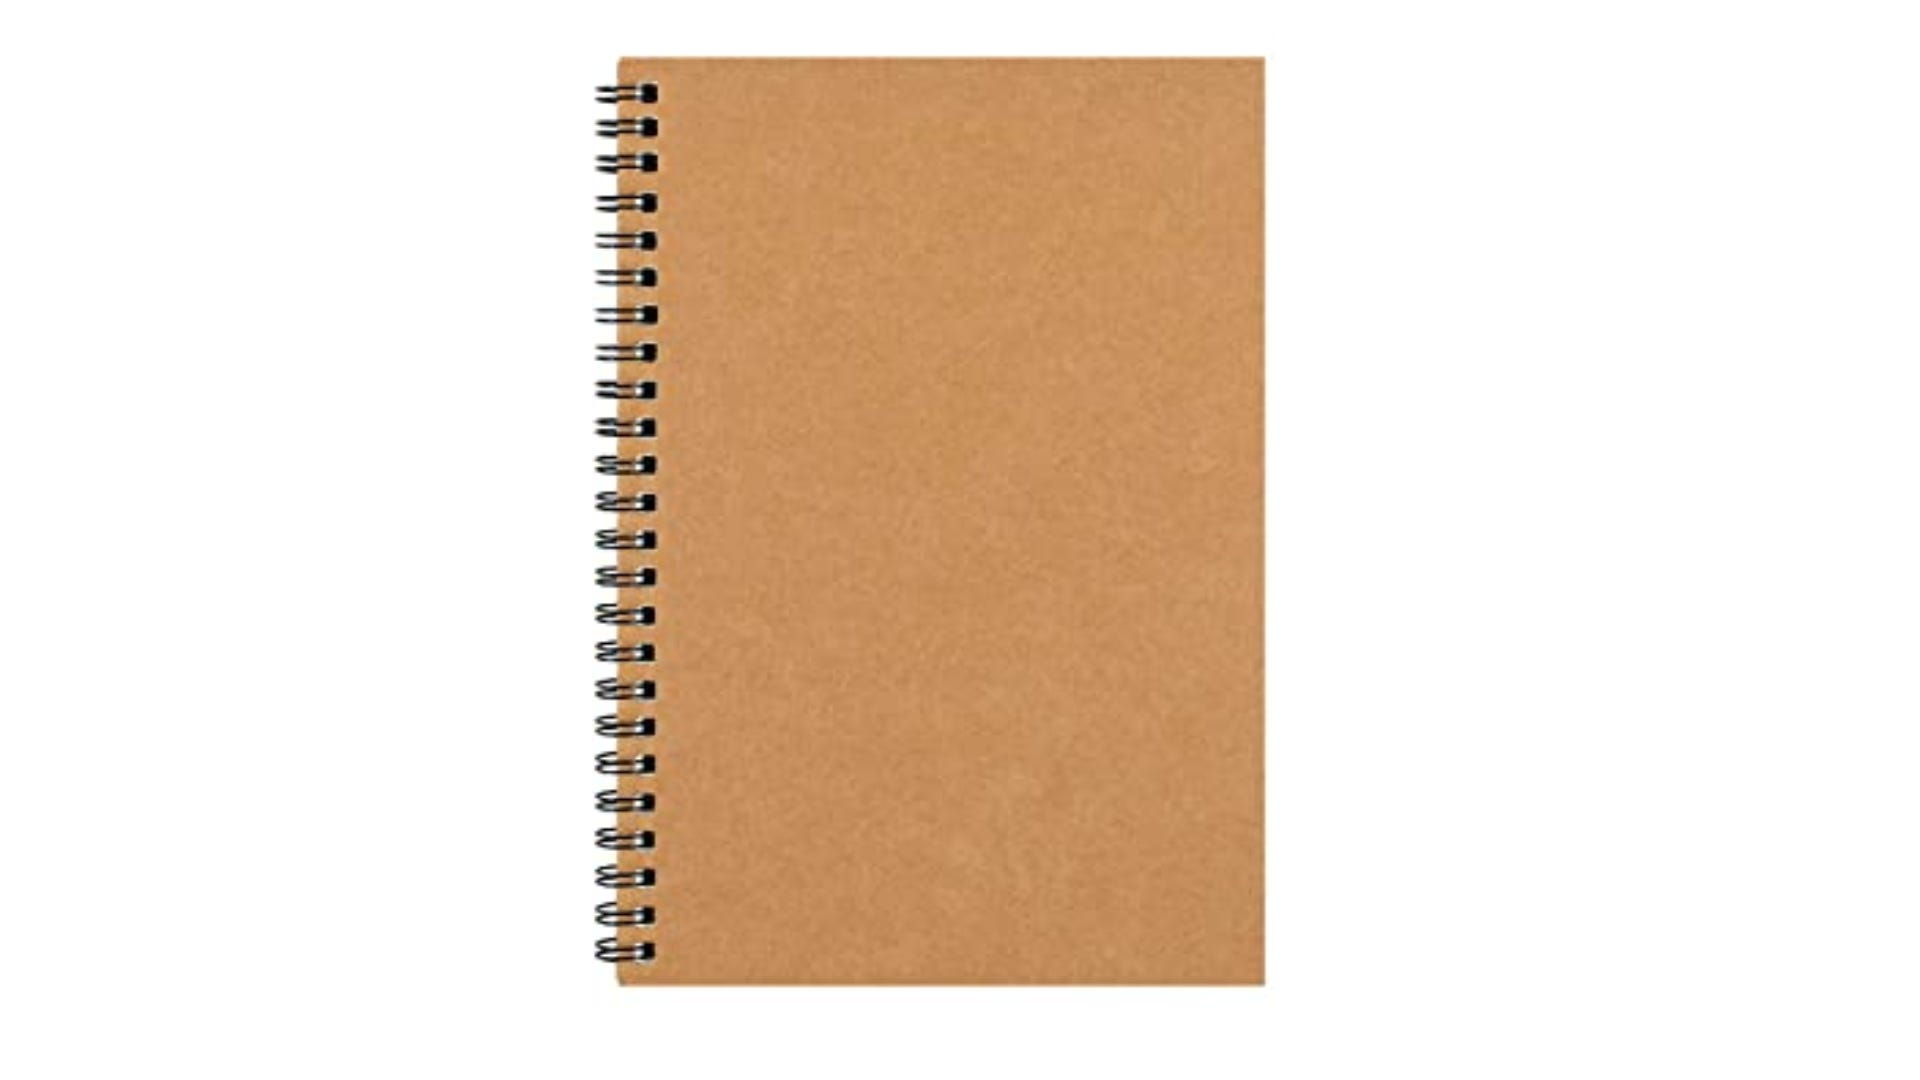 tan soft covered spiral bound notebook